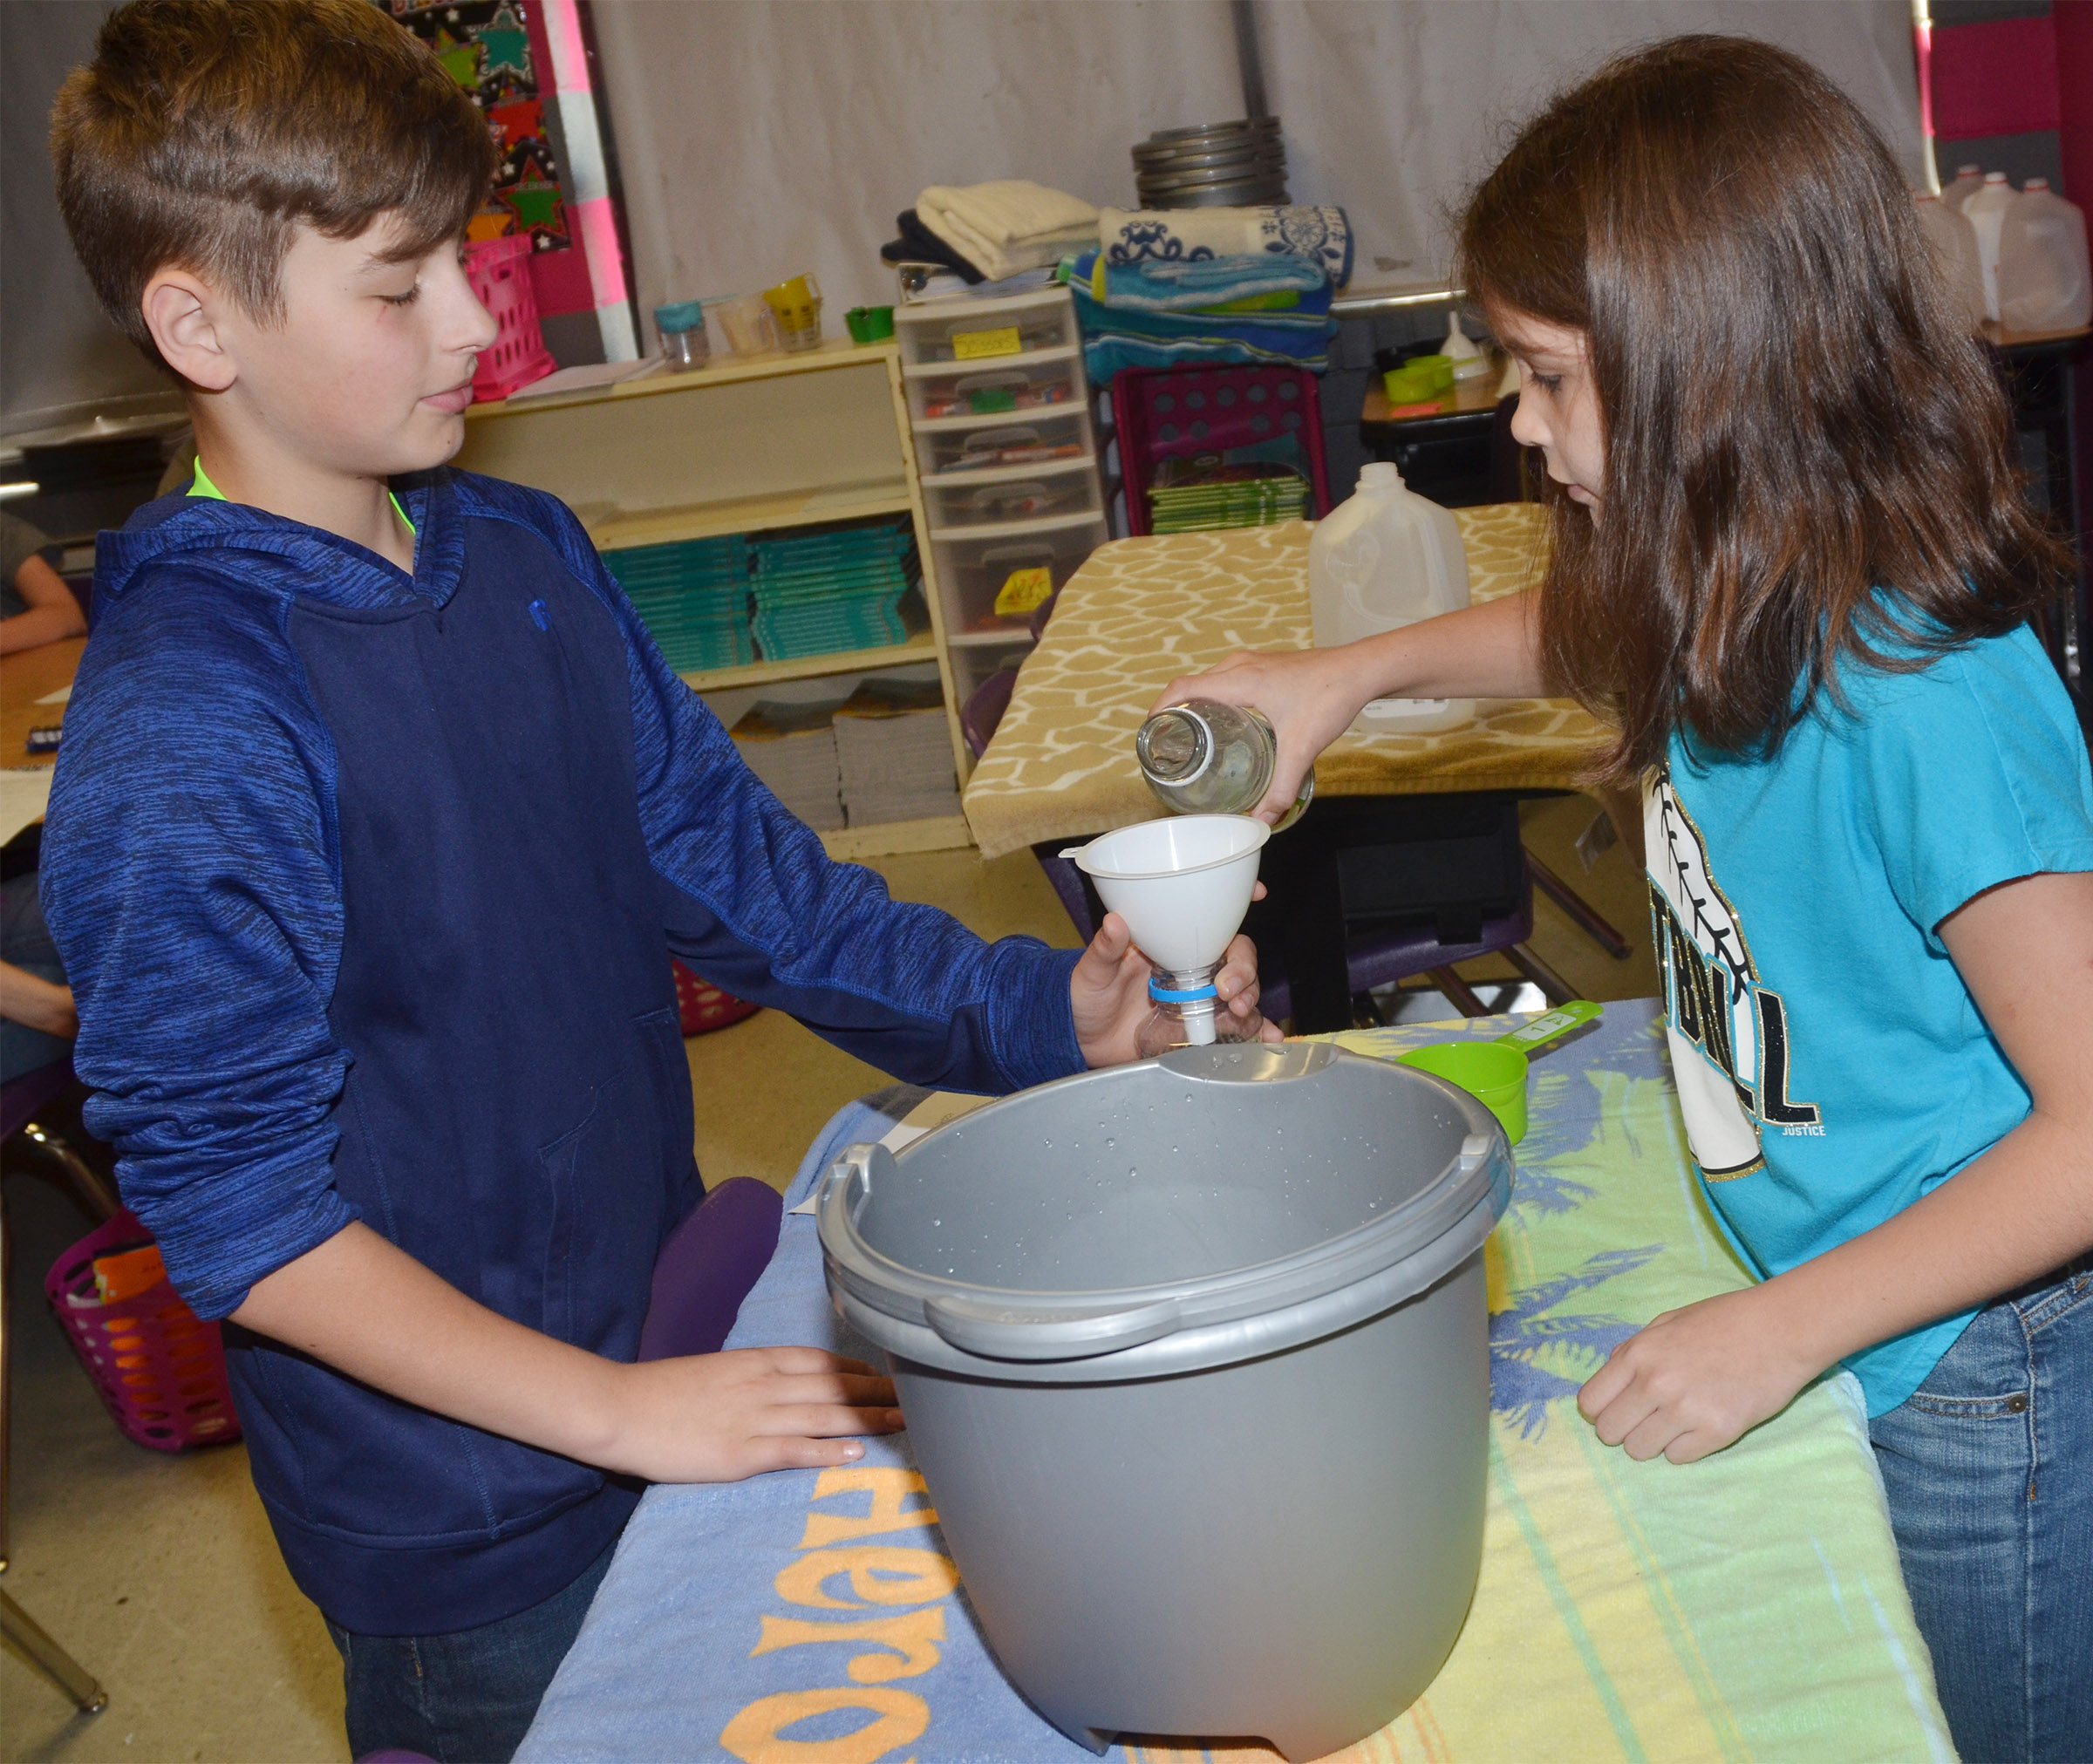 CMS fifth-graders Jaxon Sidebottom, at left, and Makayla Dudley practice measuring liquids.